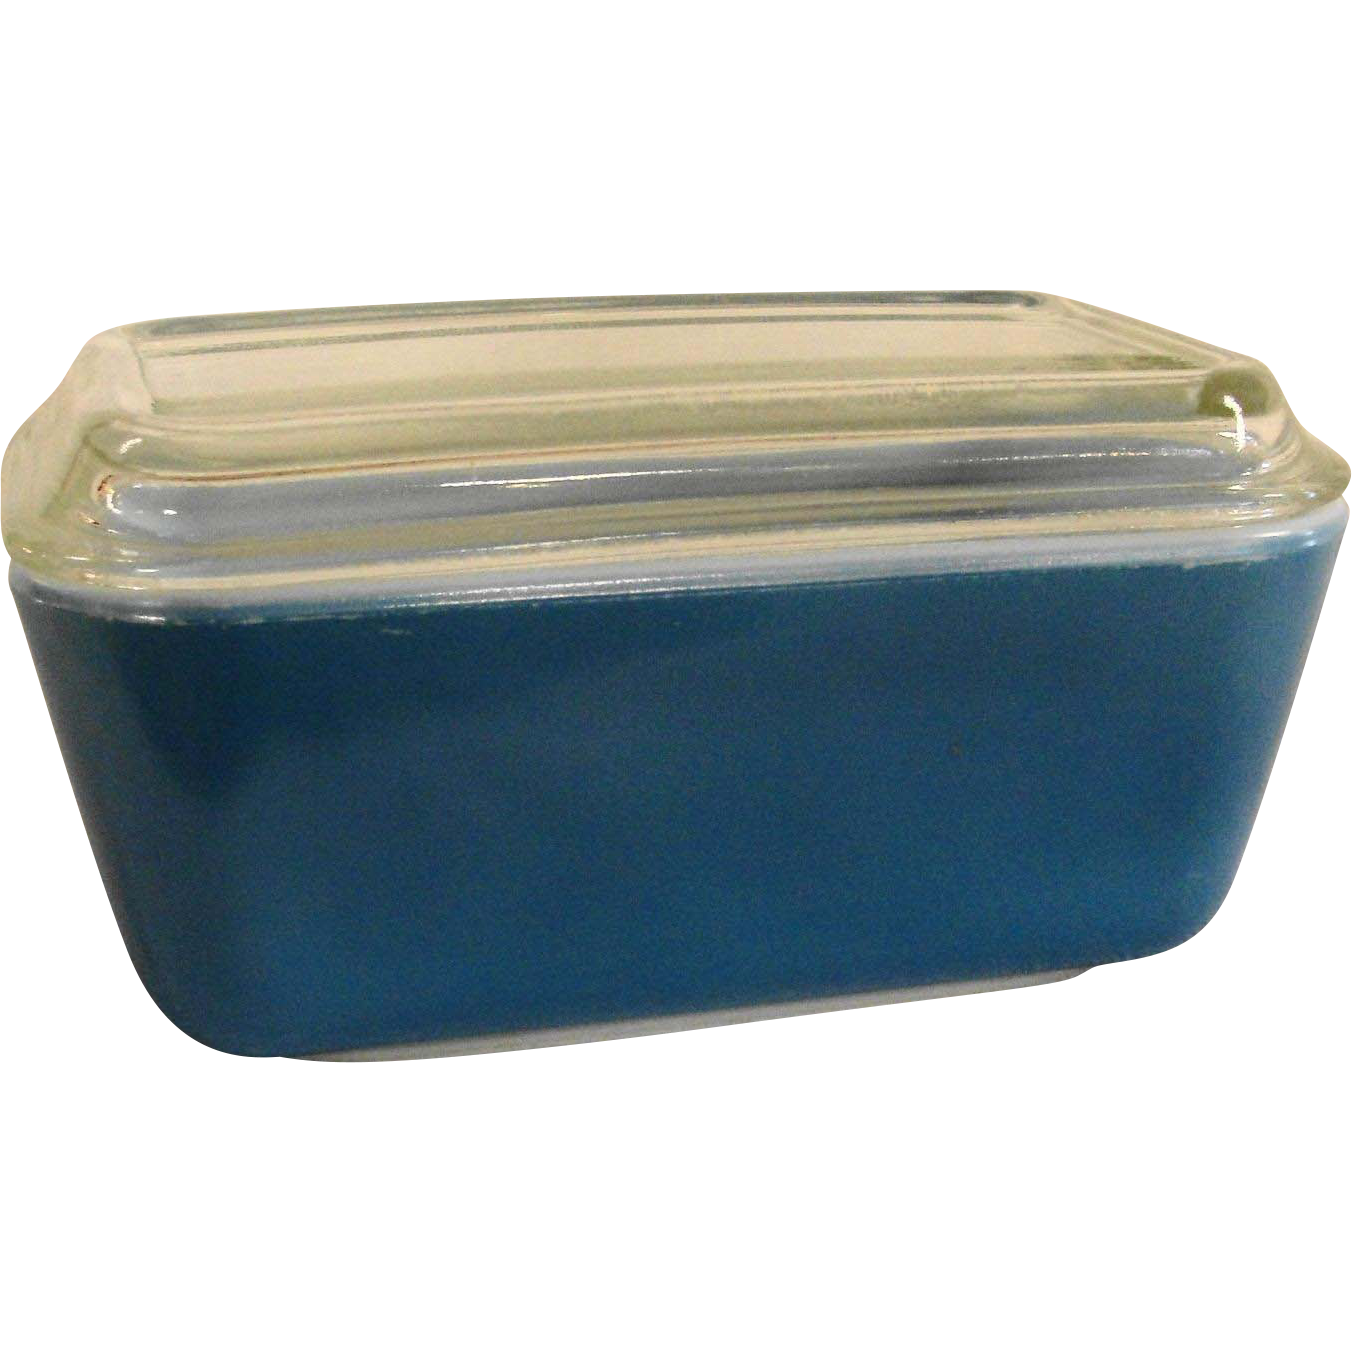 vintage pyrex blue 502 b refrigerator dish with glass lid from breadandbutter on ruby lane. Black Bedroom Furniture Sets. Home Design Ideas